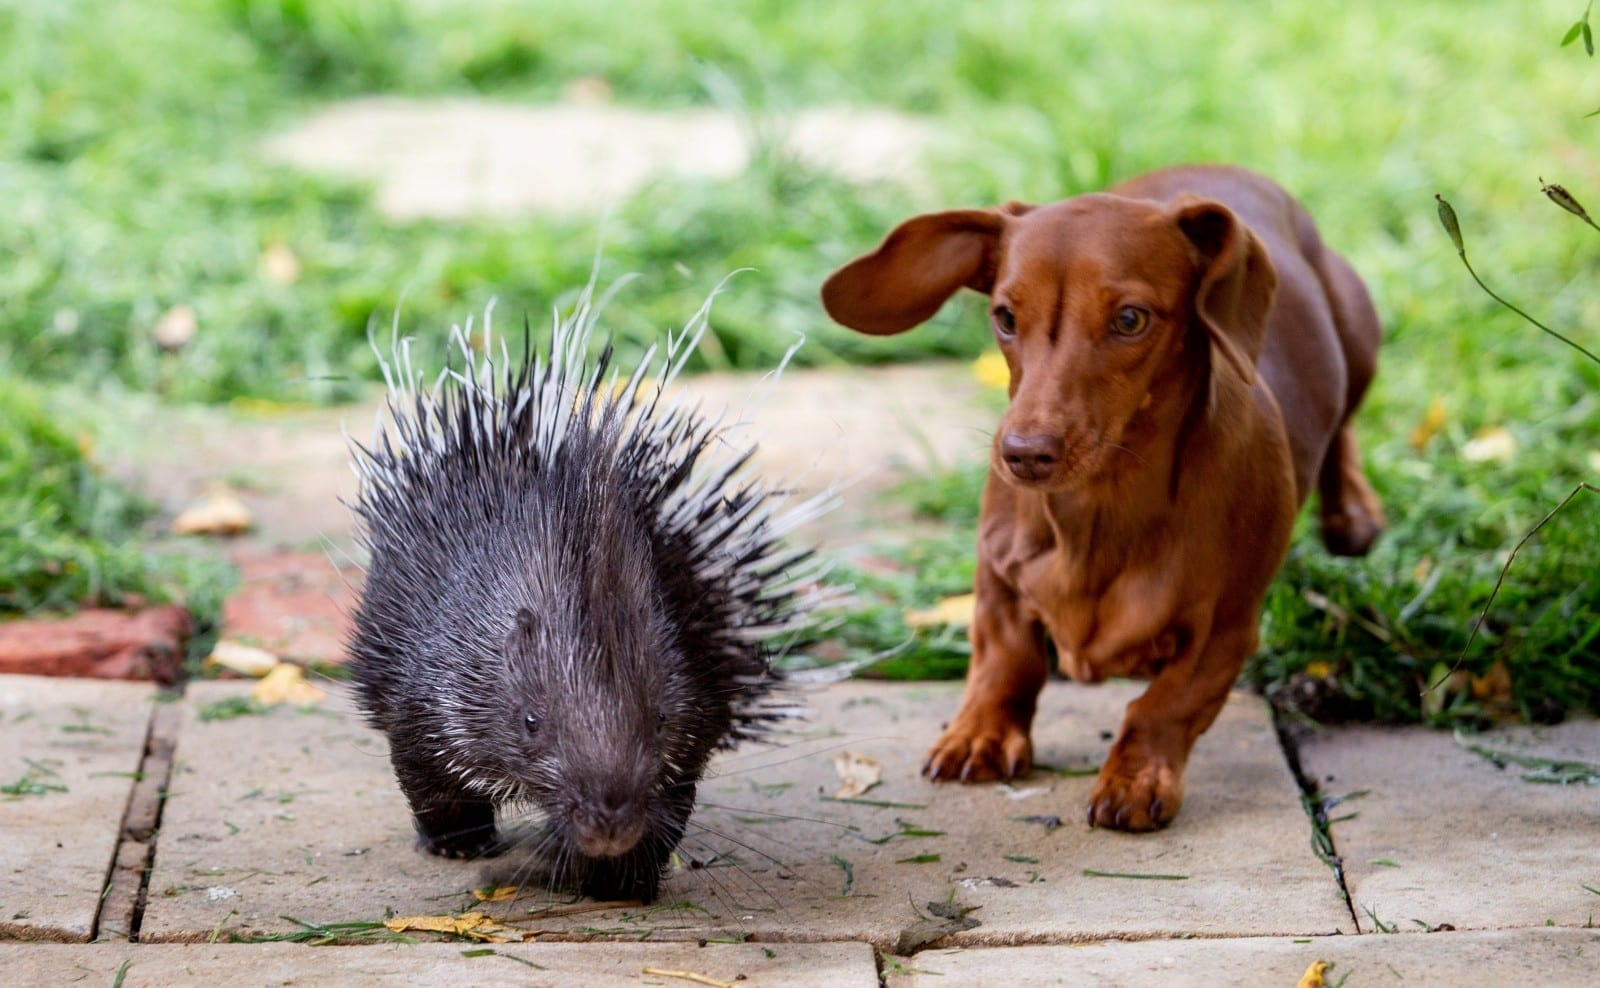 Diablo The Baby Porcupine And Fig The Sausage Dog Are The Best Of Friends